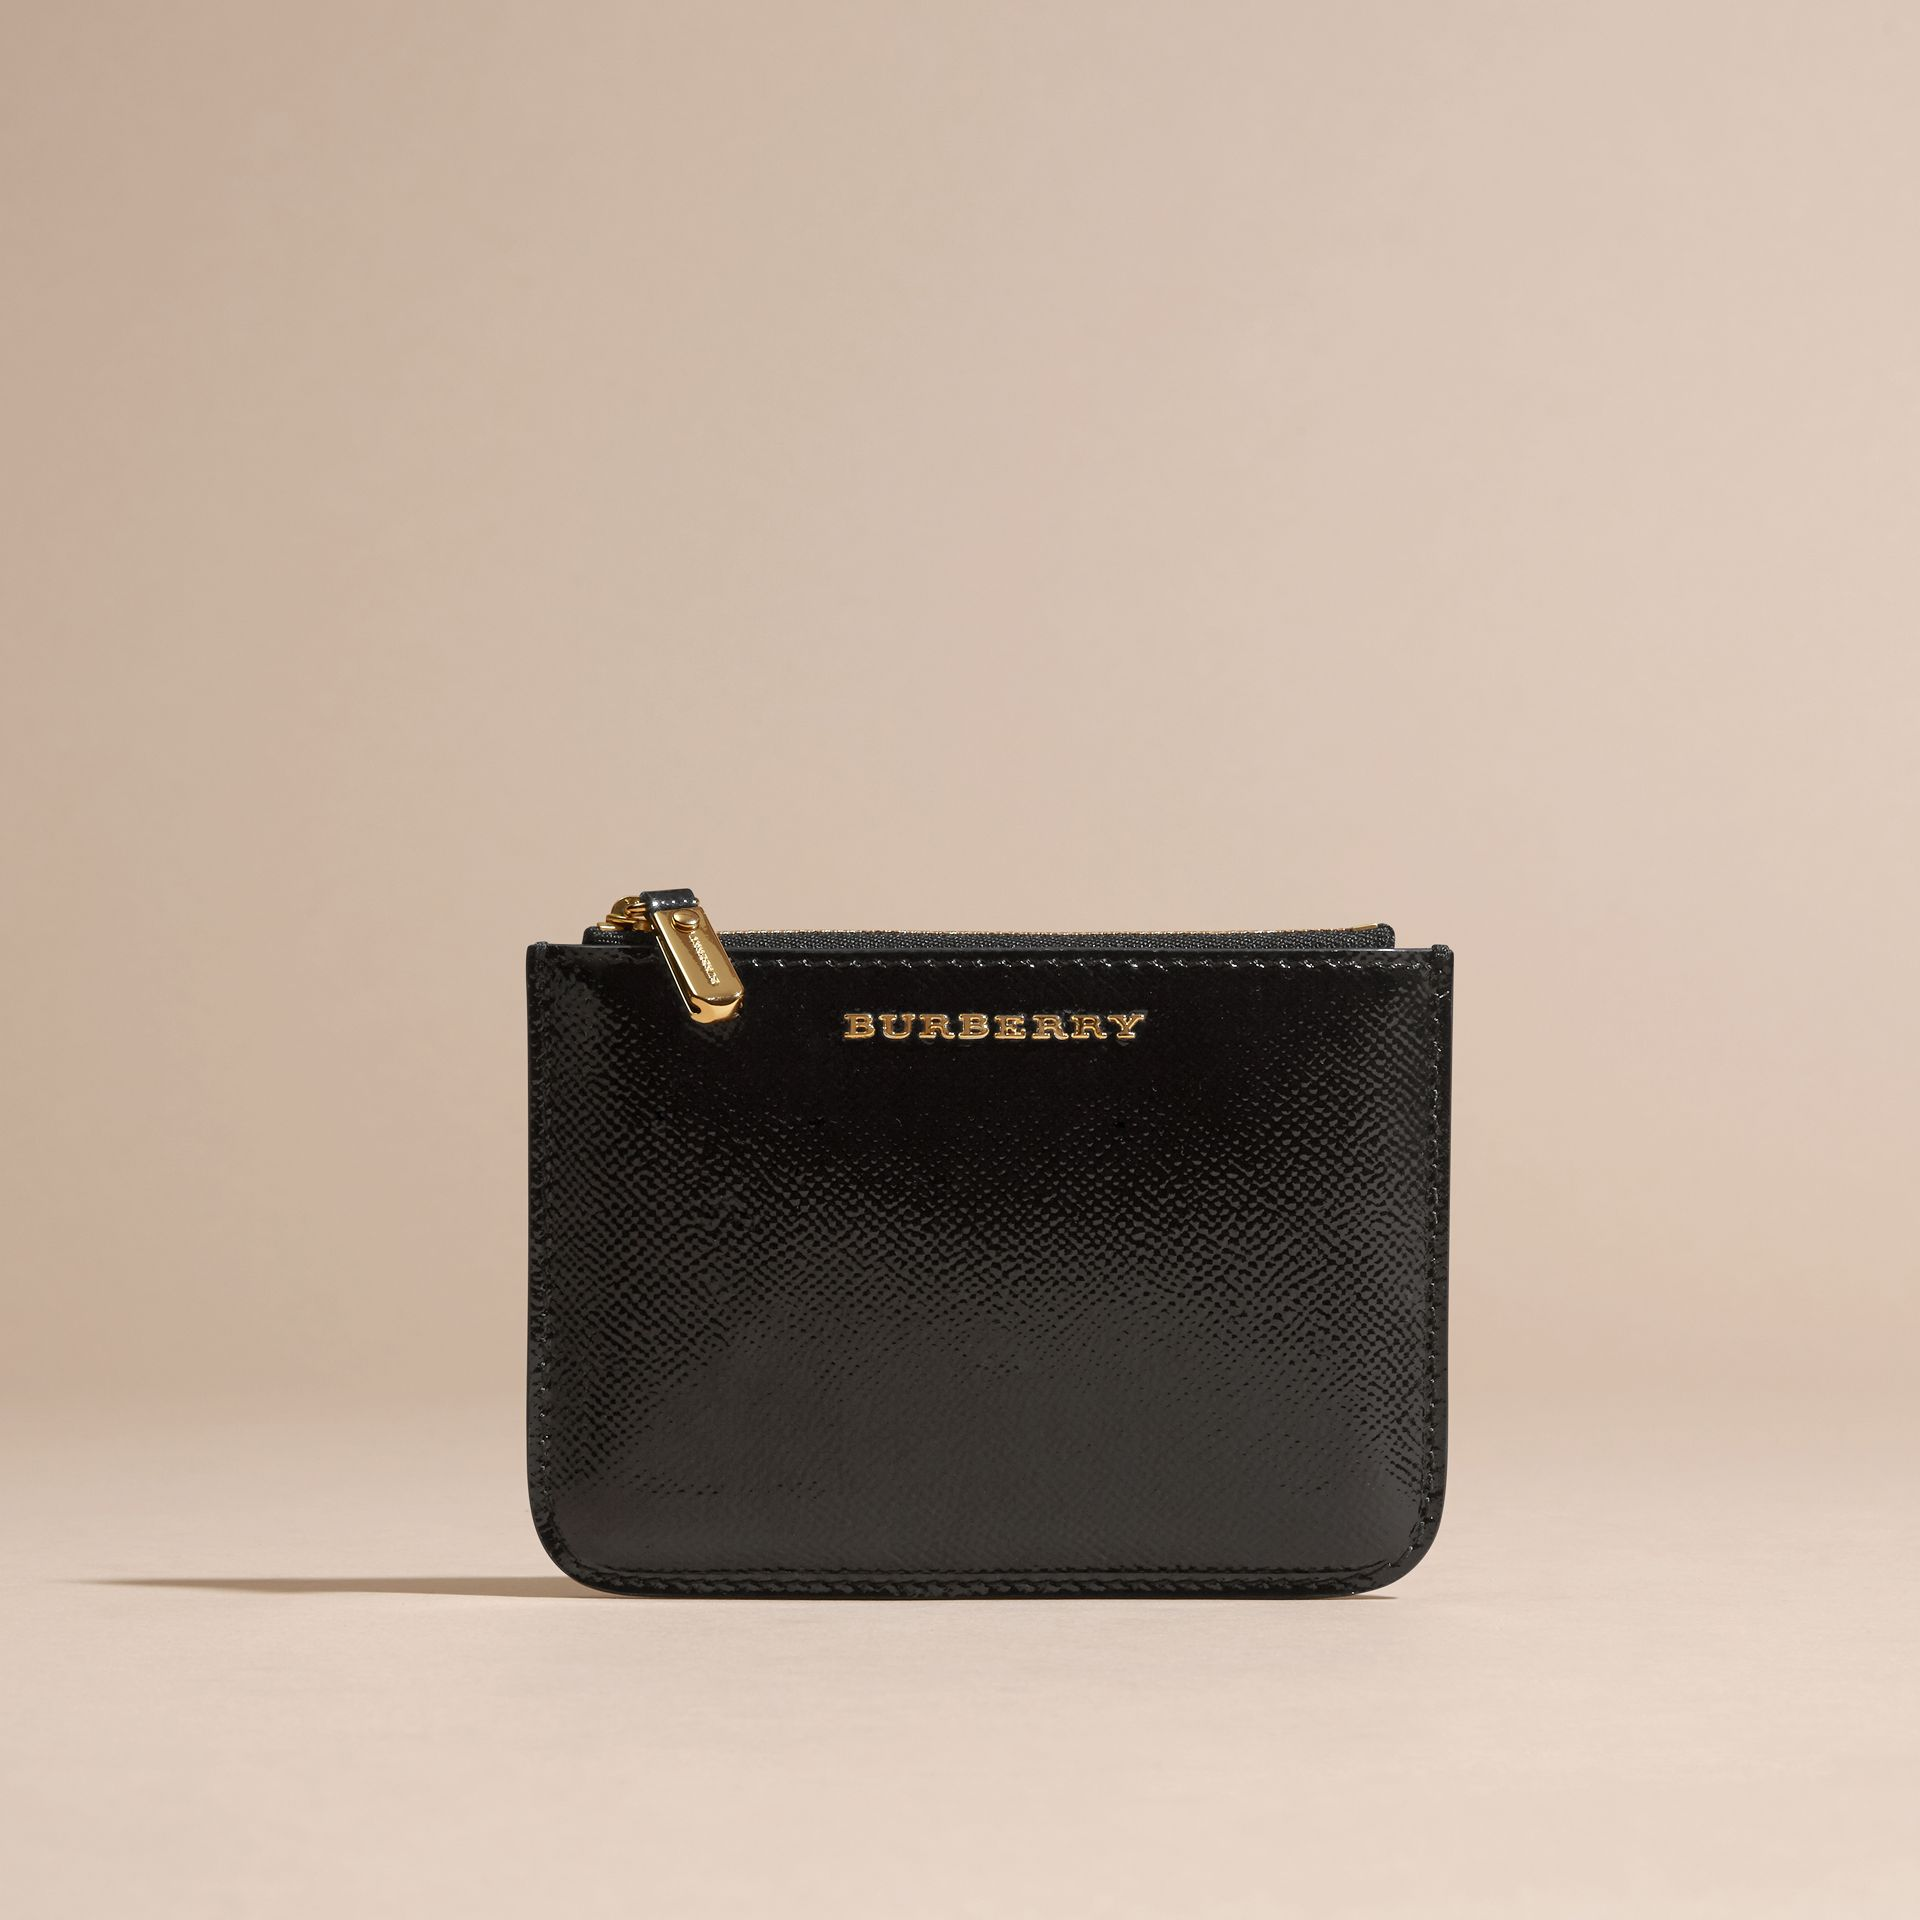 Pochette en cuir London verni - Femme | Burberry - photo de la galerie 6